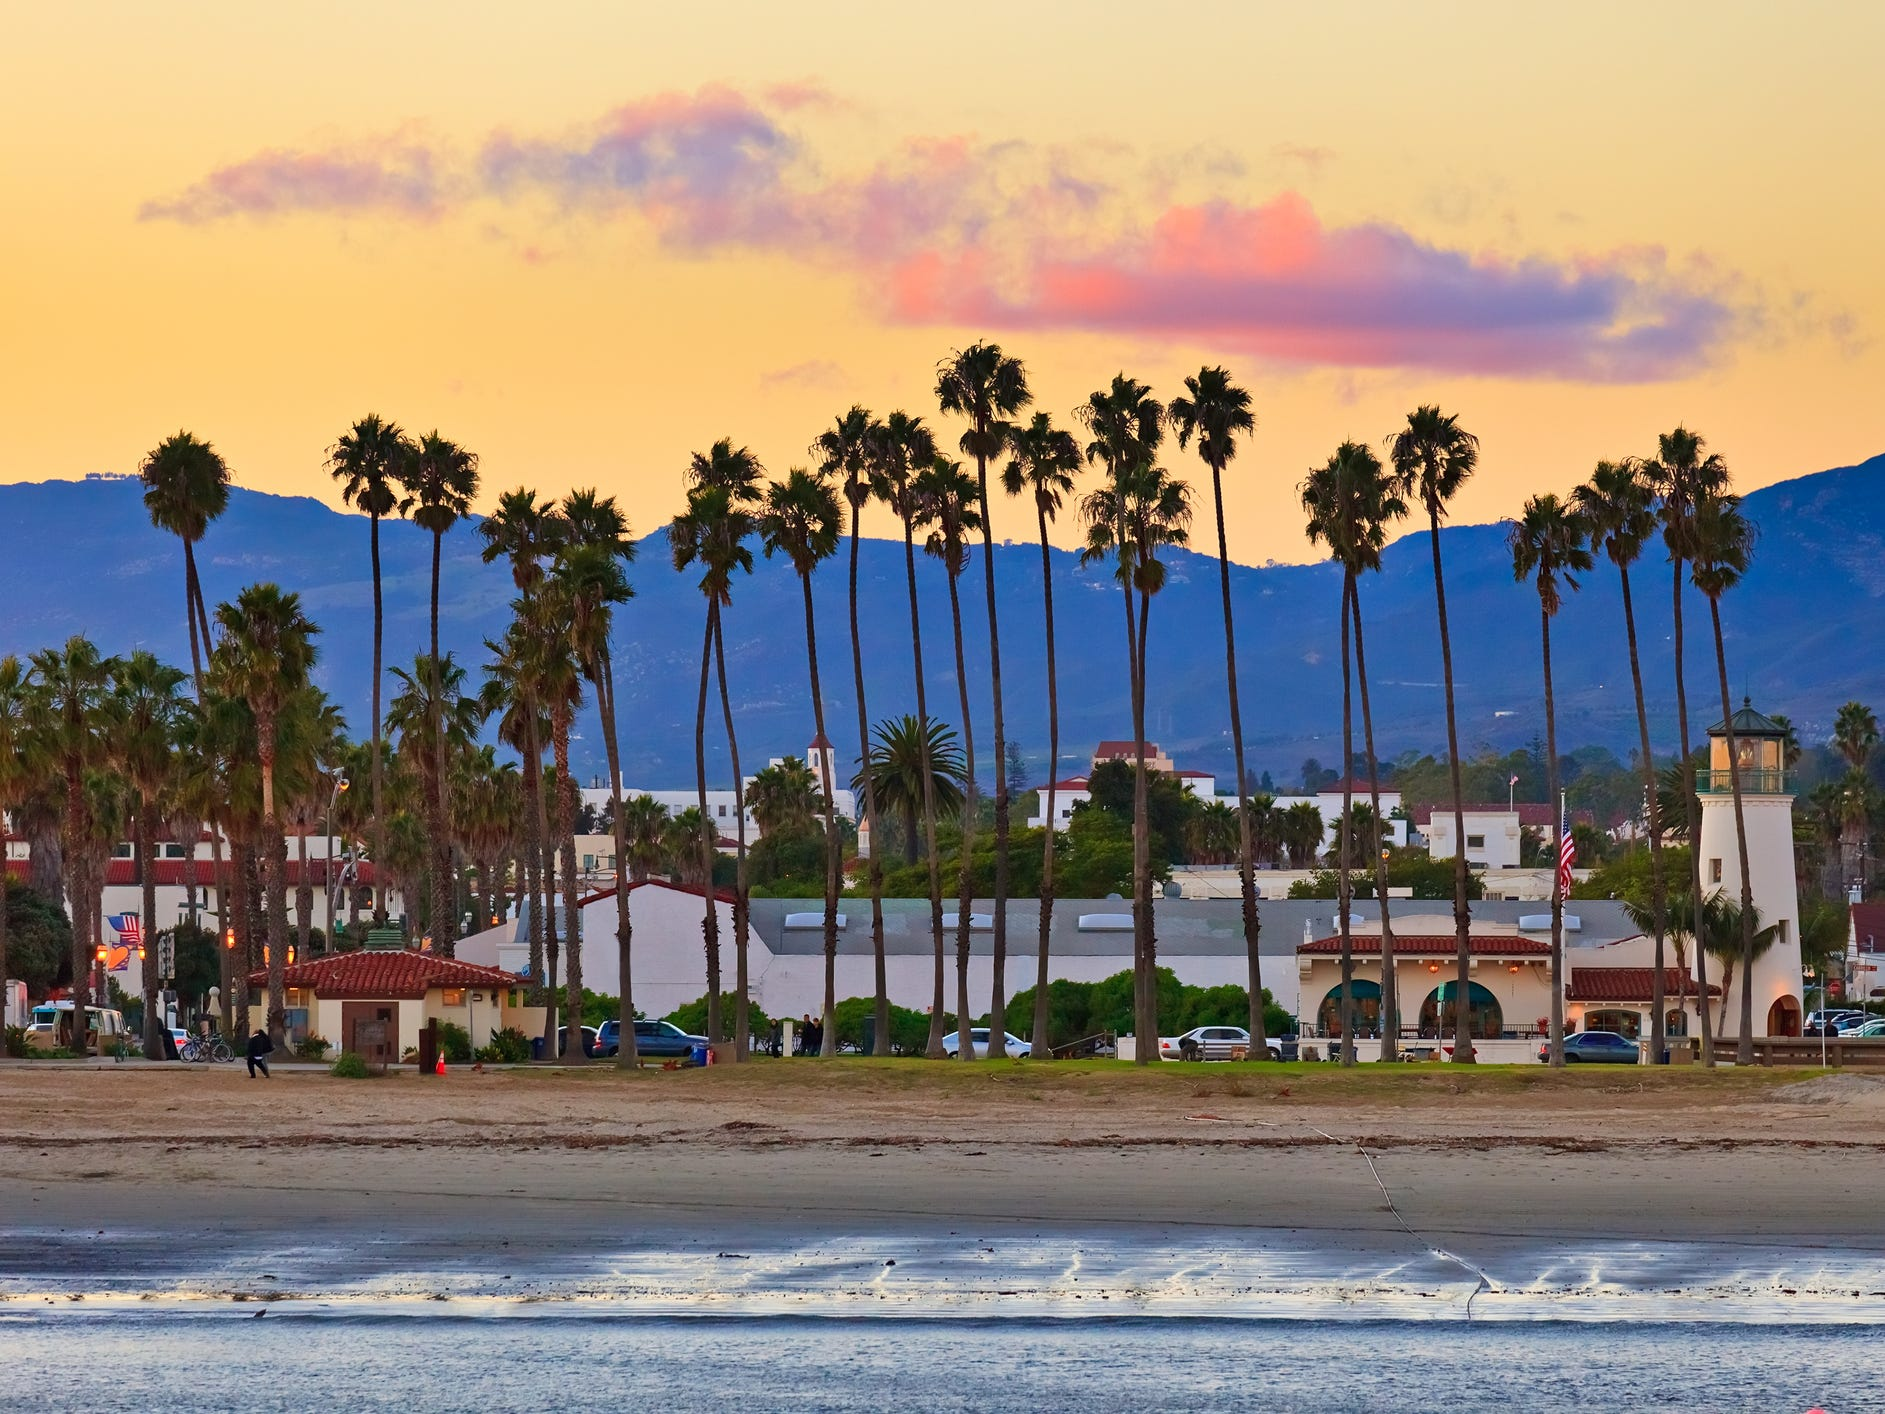 No. 16: Santa Barbara, California.